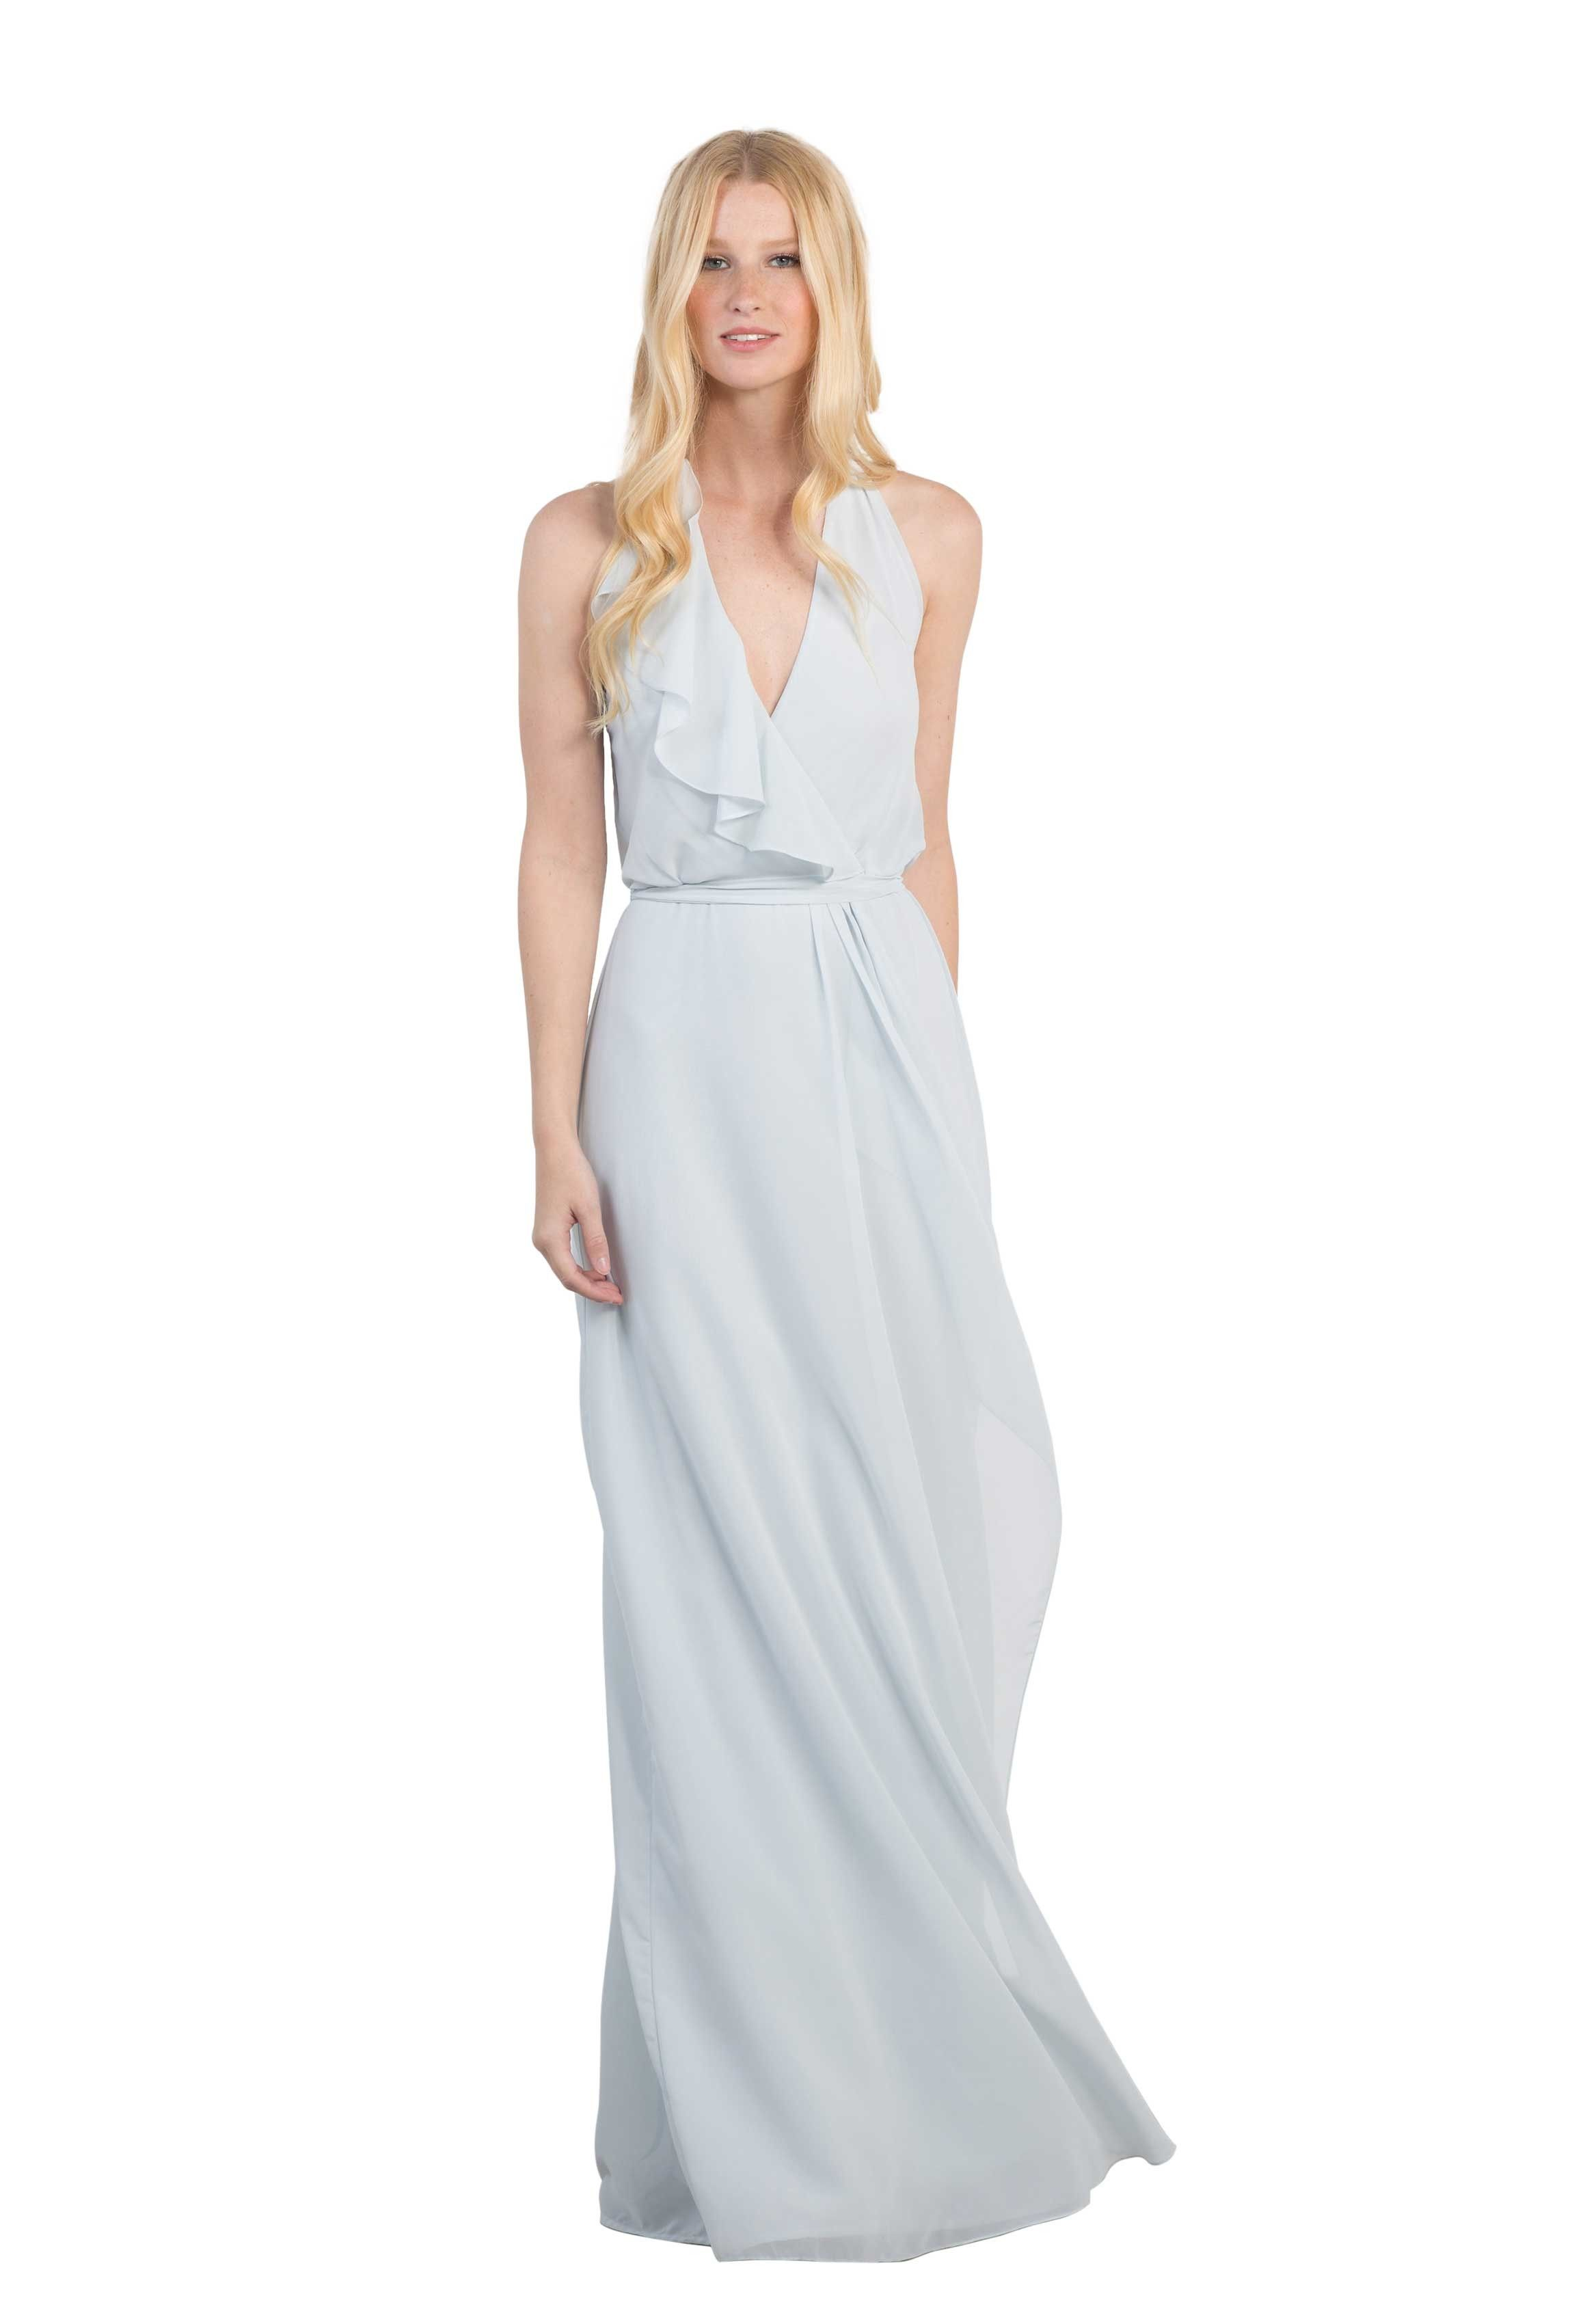 Nouvelle amsale erica to be chiffon and designer bridesmaid dresses a floor length halter chiffon bridesmaid dress in two colors affordable designer bridesmaid ombrellifo Images